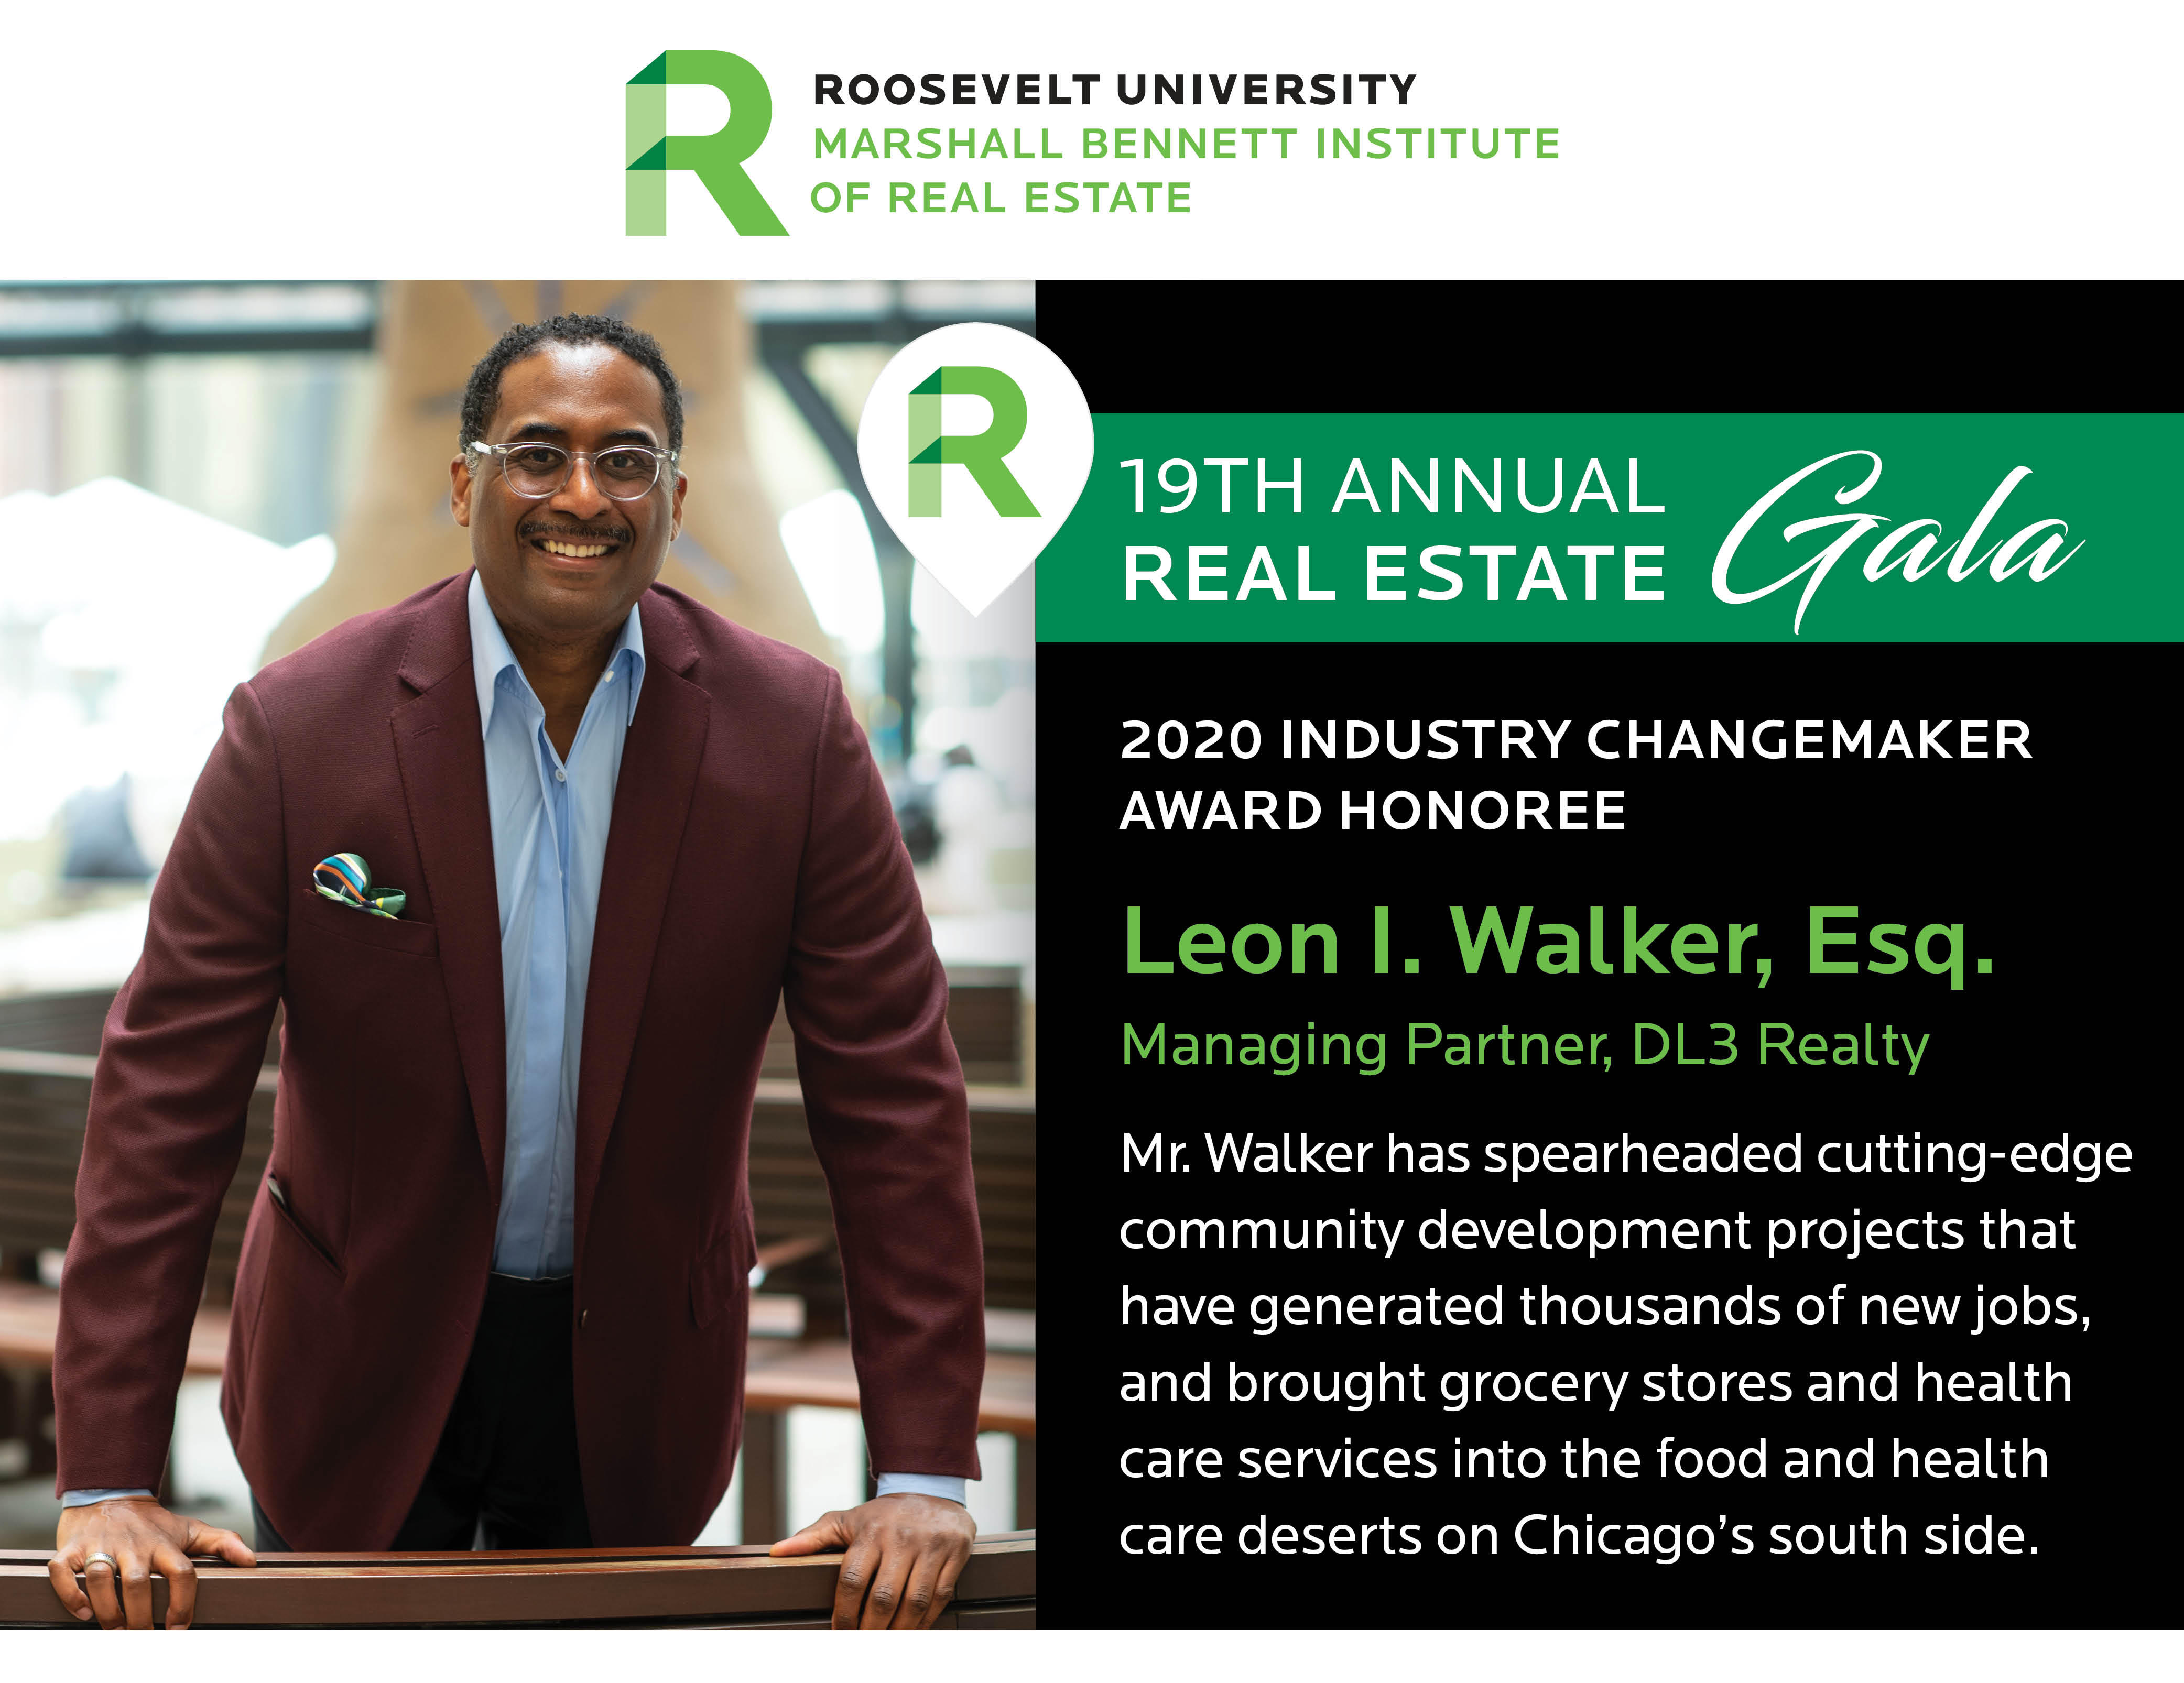 Header image: top - Roosevelt University Marshall Bennett Institute of Real Estate logo, left - photo of Leon I. Walker, Esq. Right - 20th Annual Real Estate Gala 2020 INDUSTRY CHANGEMAKER AWARD Honoree Leon I. Walker, Esq. Managing Partner, DL3 Realty - Mr. Walker has spearheaded cutting-edge community development projects that have generated thousands of new jobs, and brought grocery stores and health care services into the food and health care deserts on Chicago's south side.